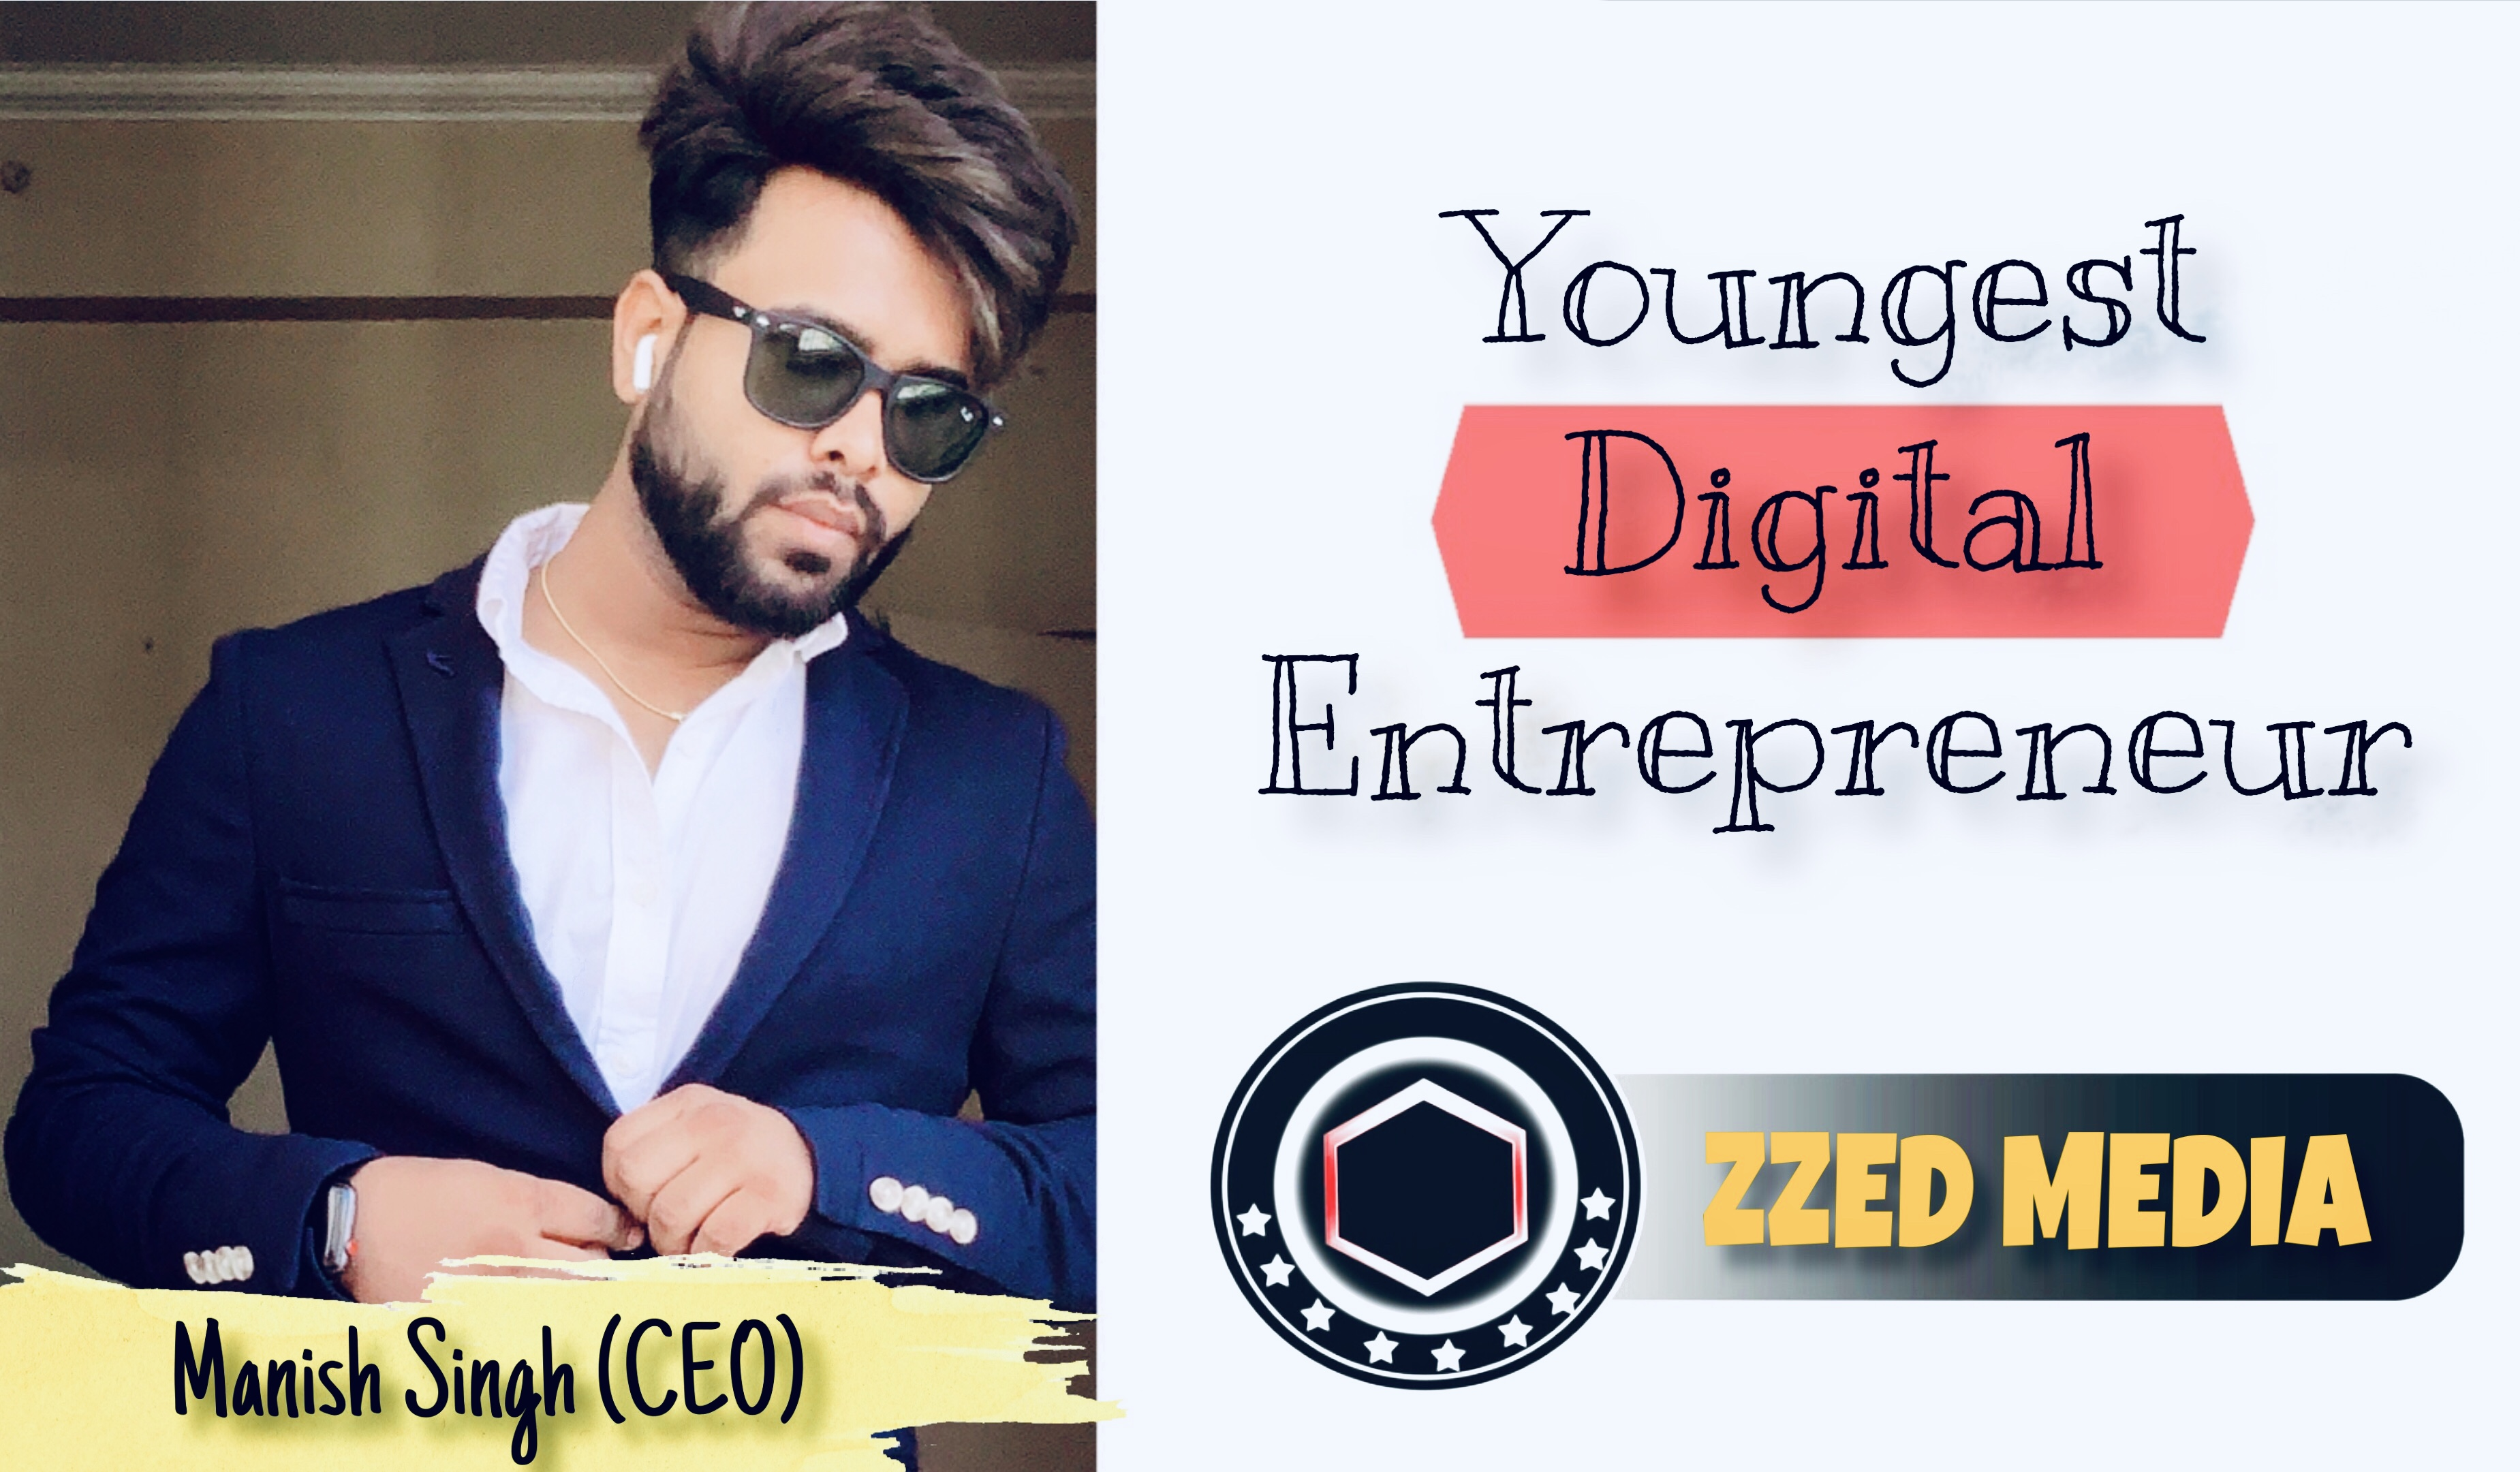 Youngest Digital Entrepreneur